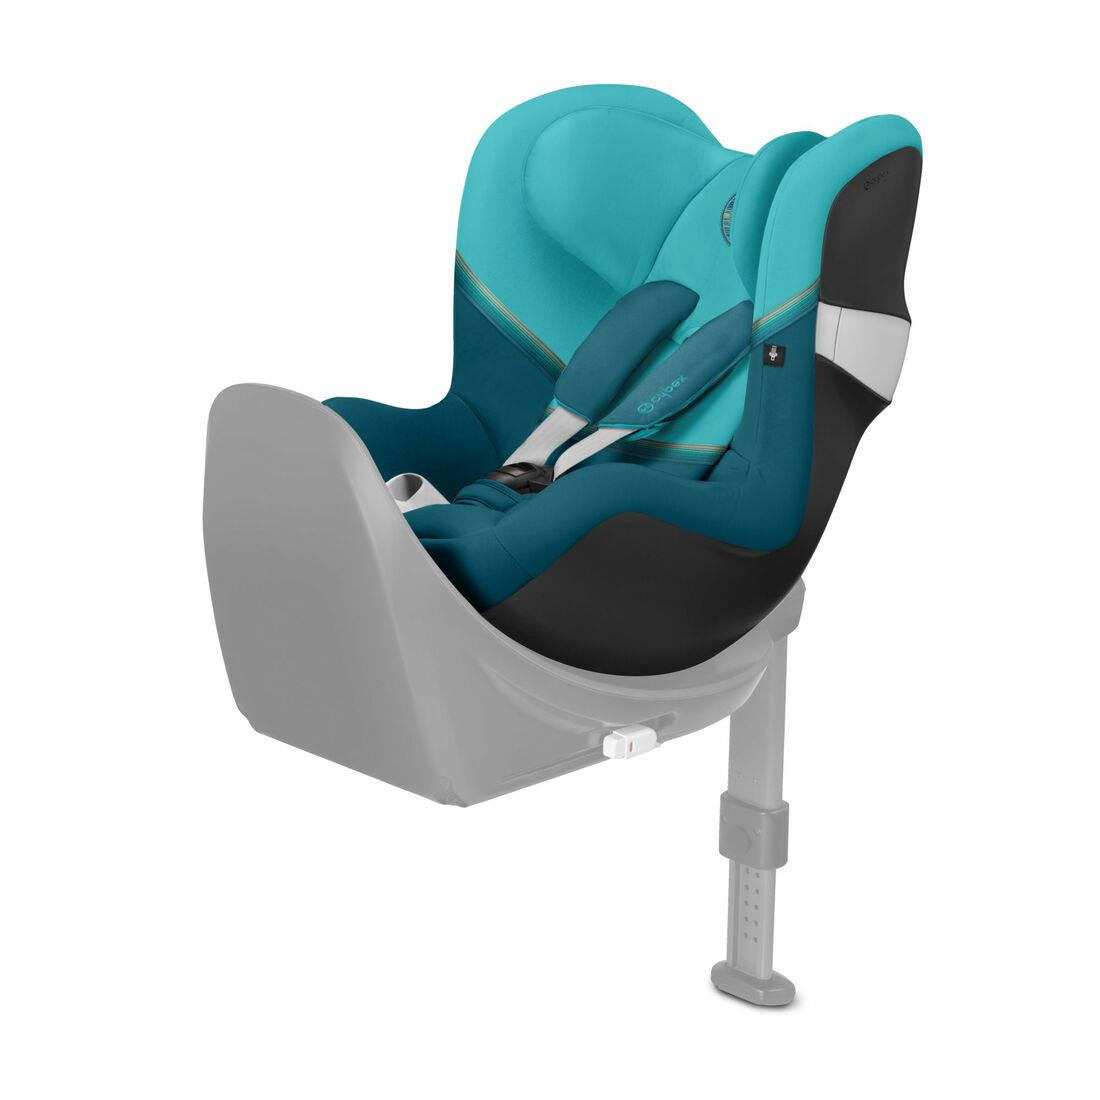 CYBEX Sirona M2 i-Size - River Blue in River Blue large image number 1